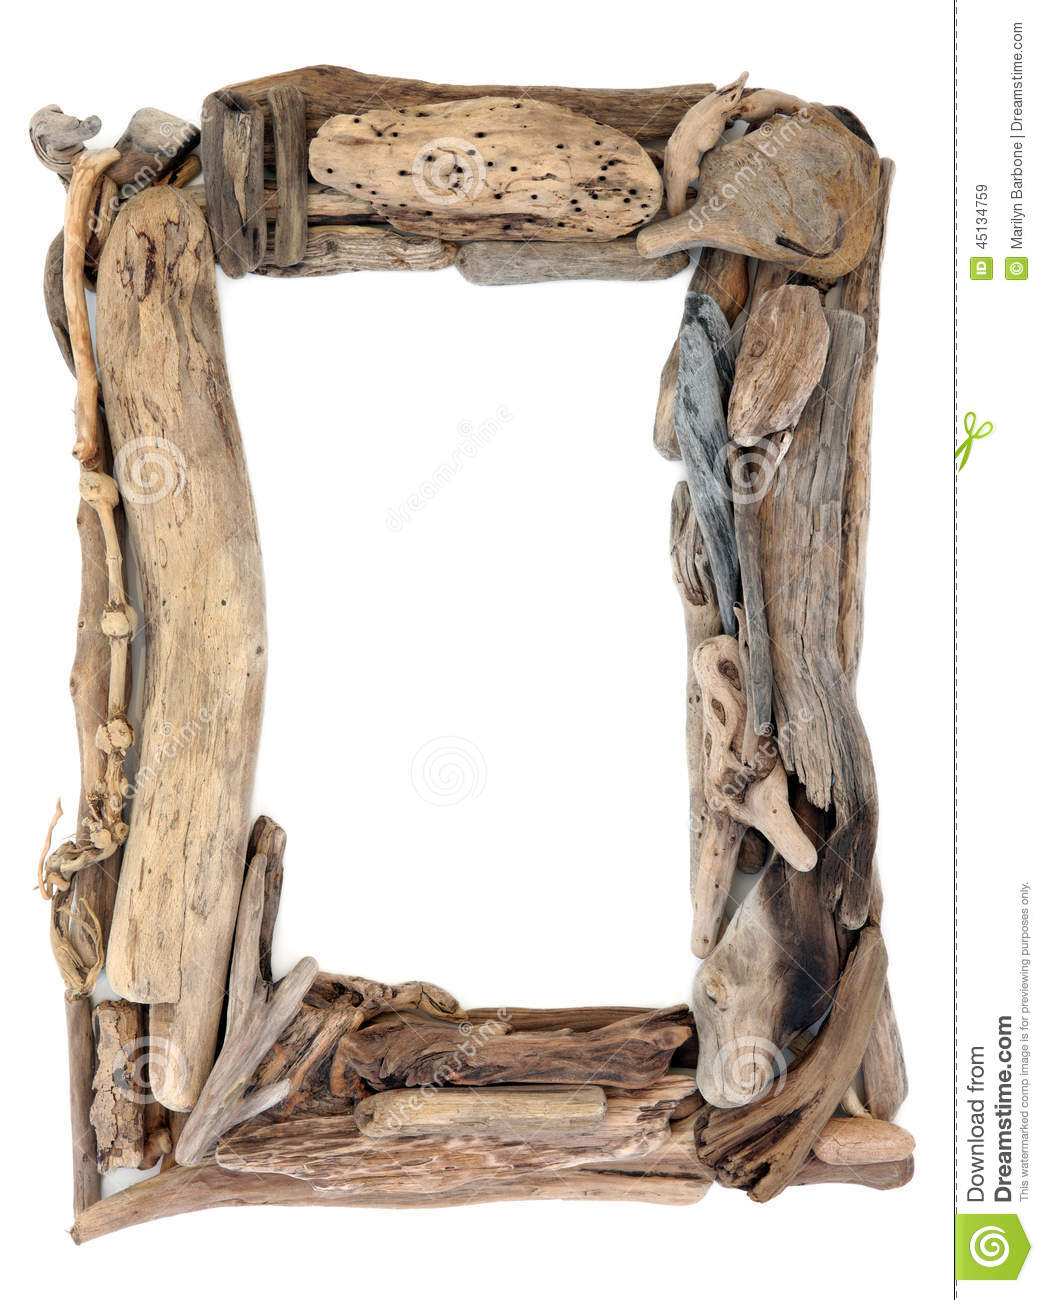 driftwood frame - Driftwood Picture Frame